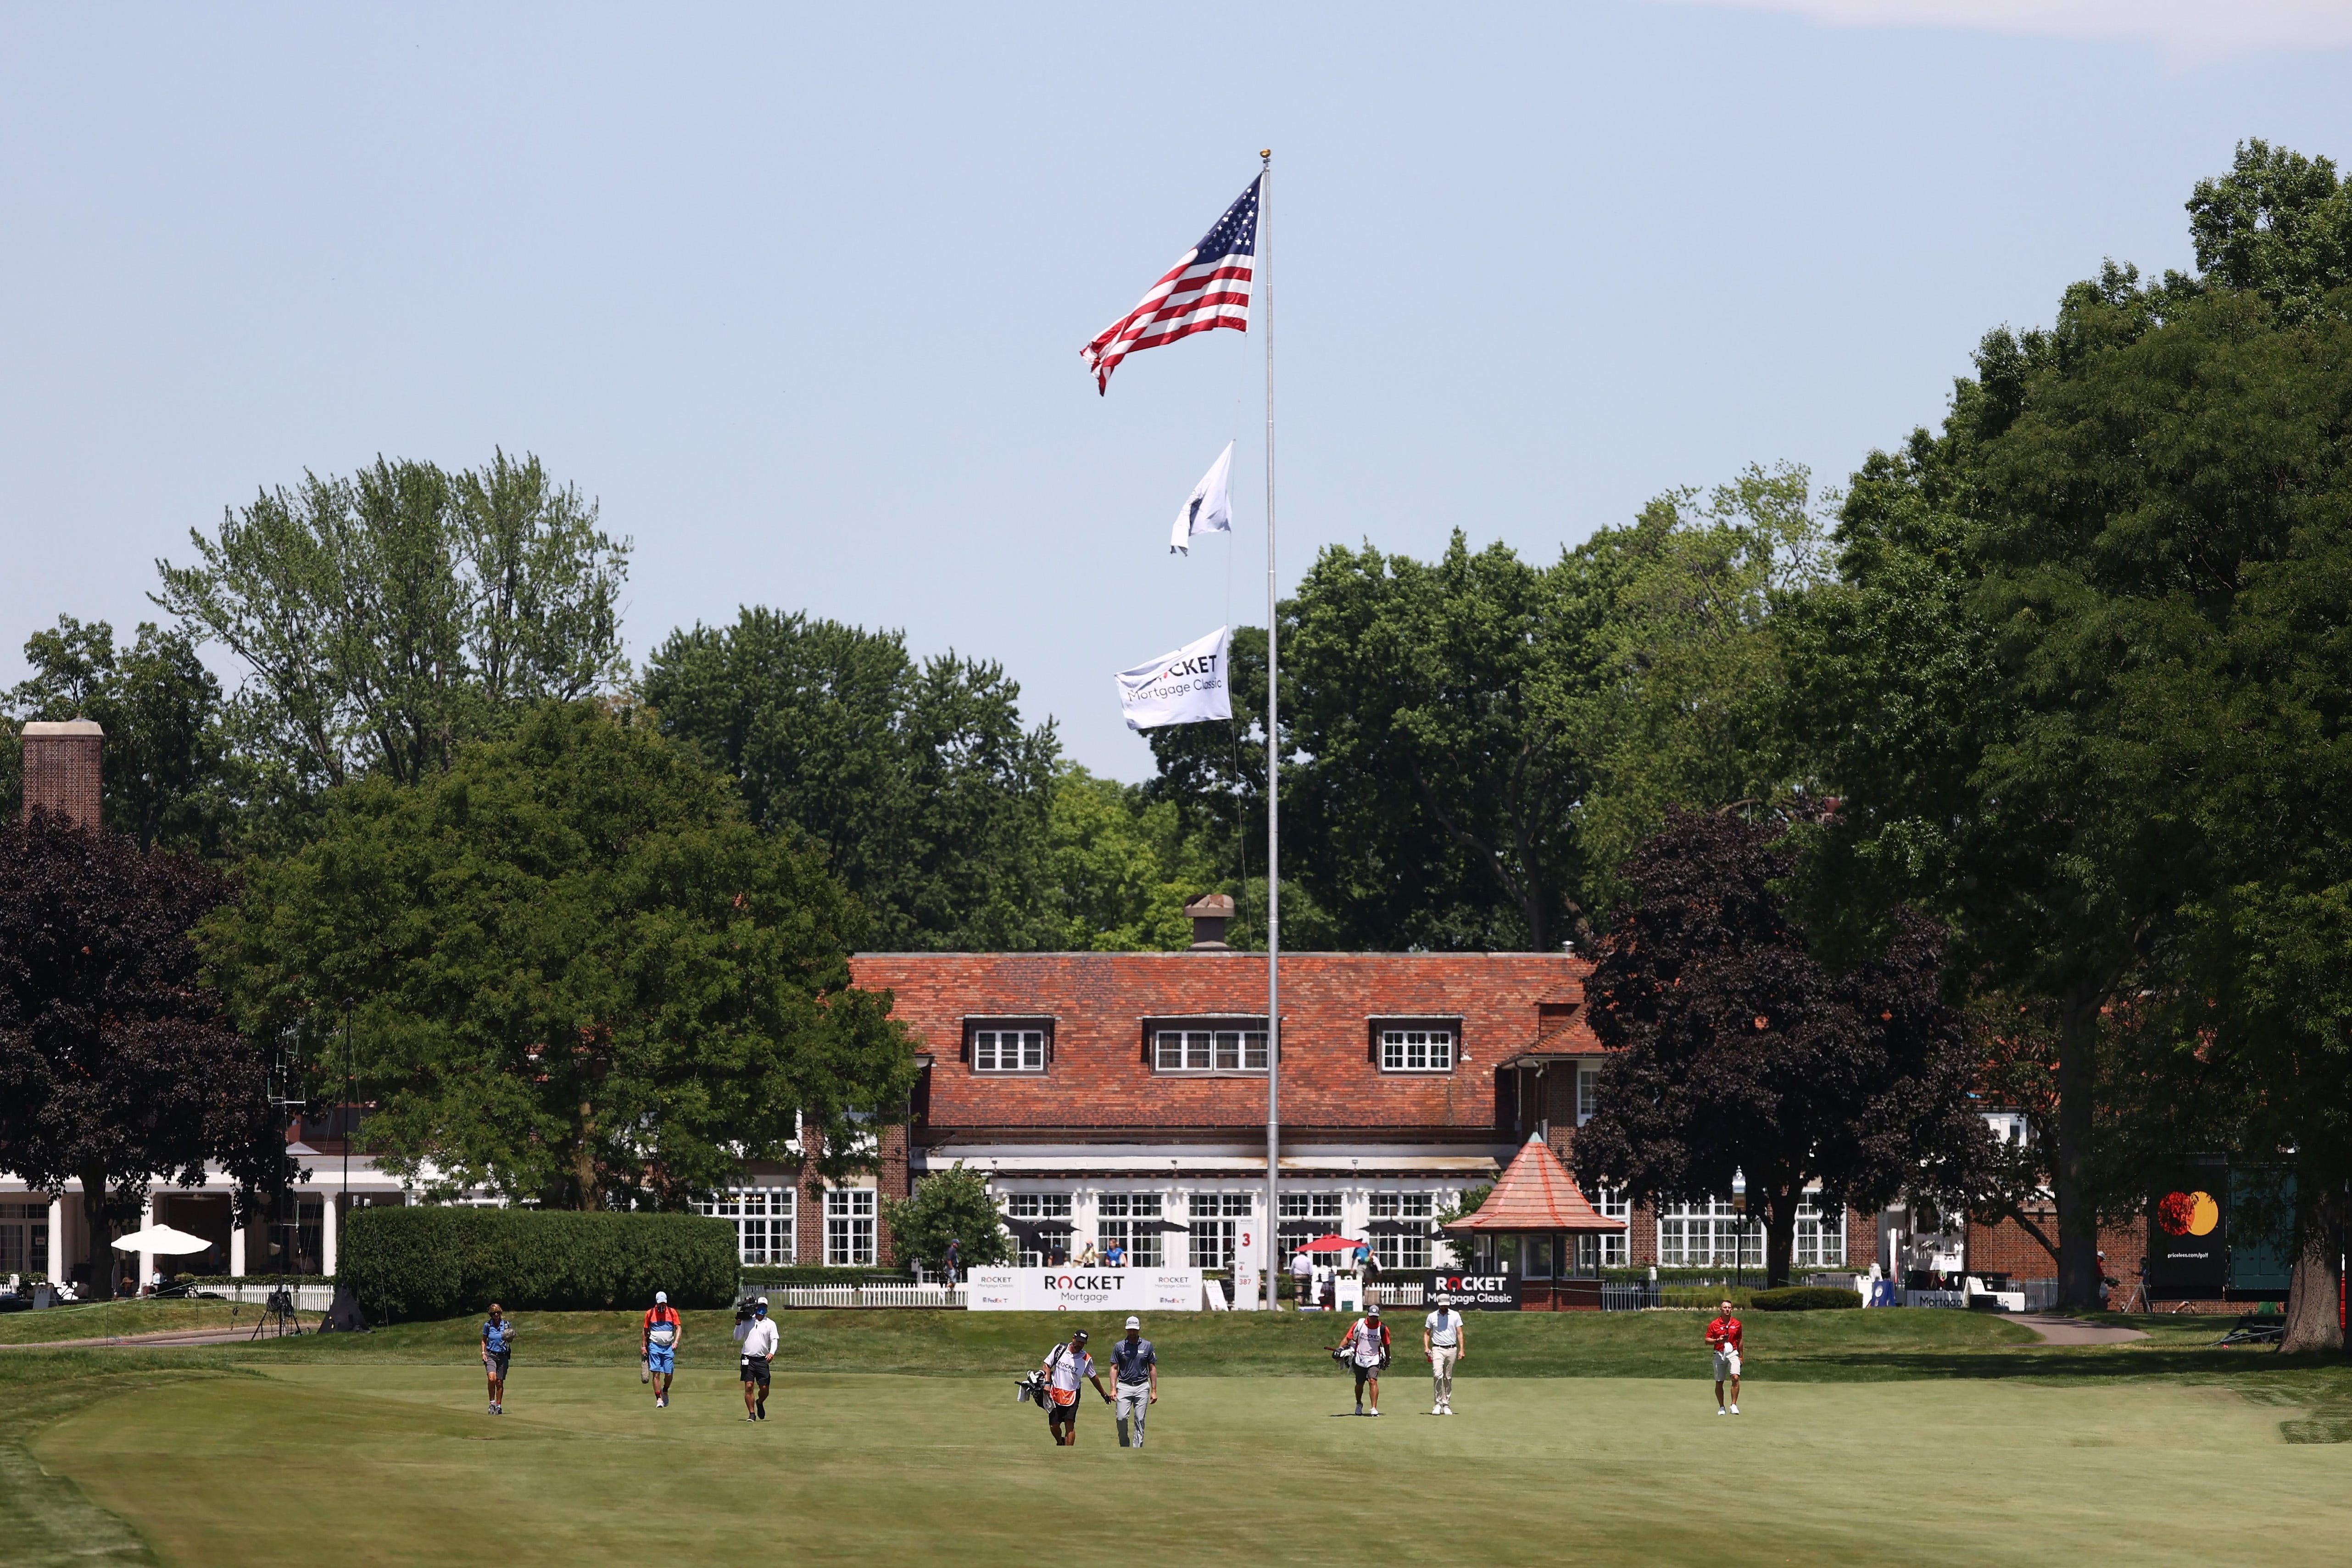 detroitnews.com - Tony Paul, The Detroit News - Rocket Mortgage Classic will be remembered as a/u00a0'lonely' experience